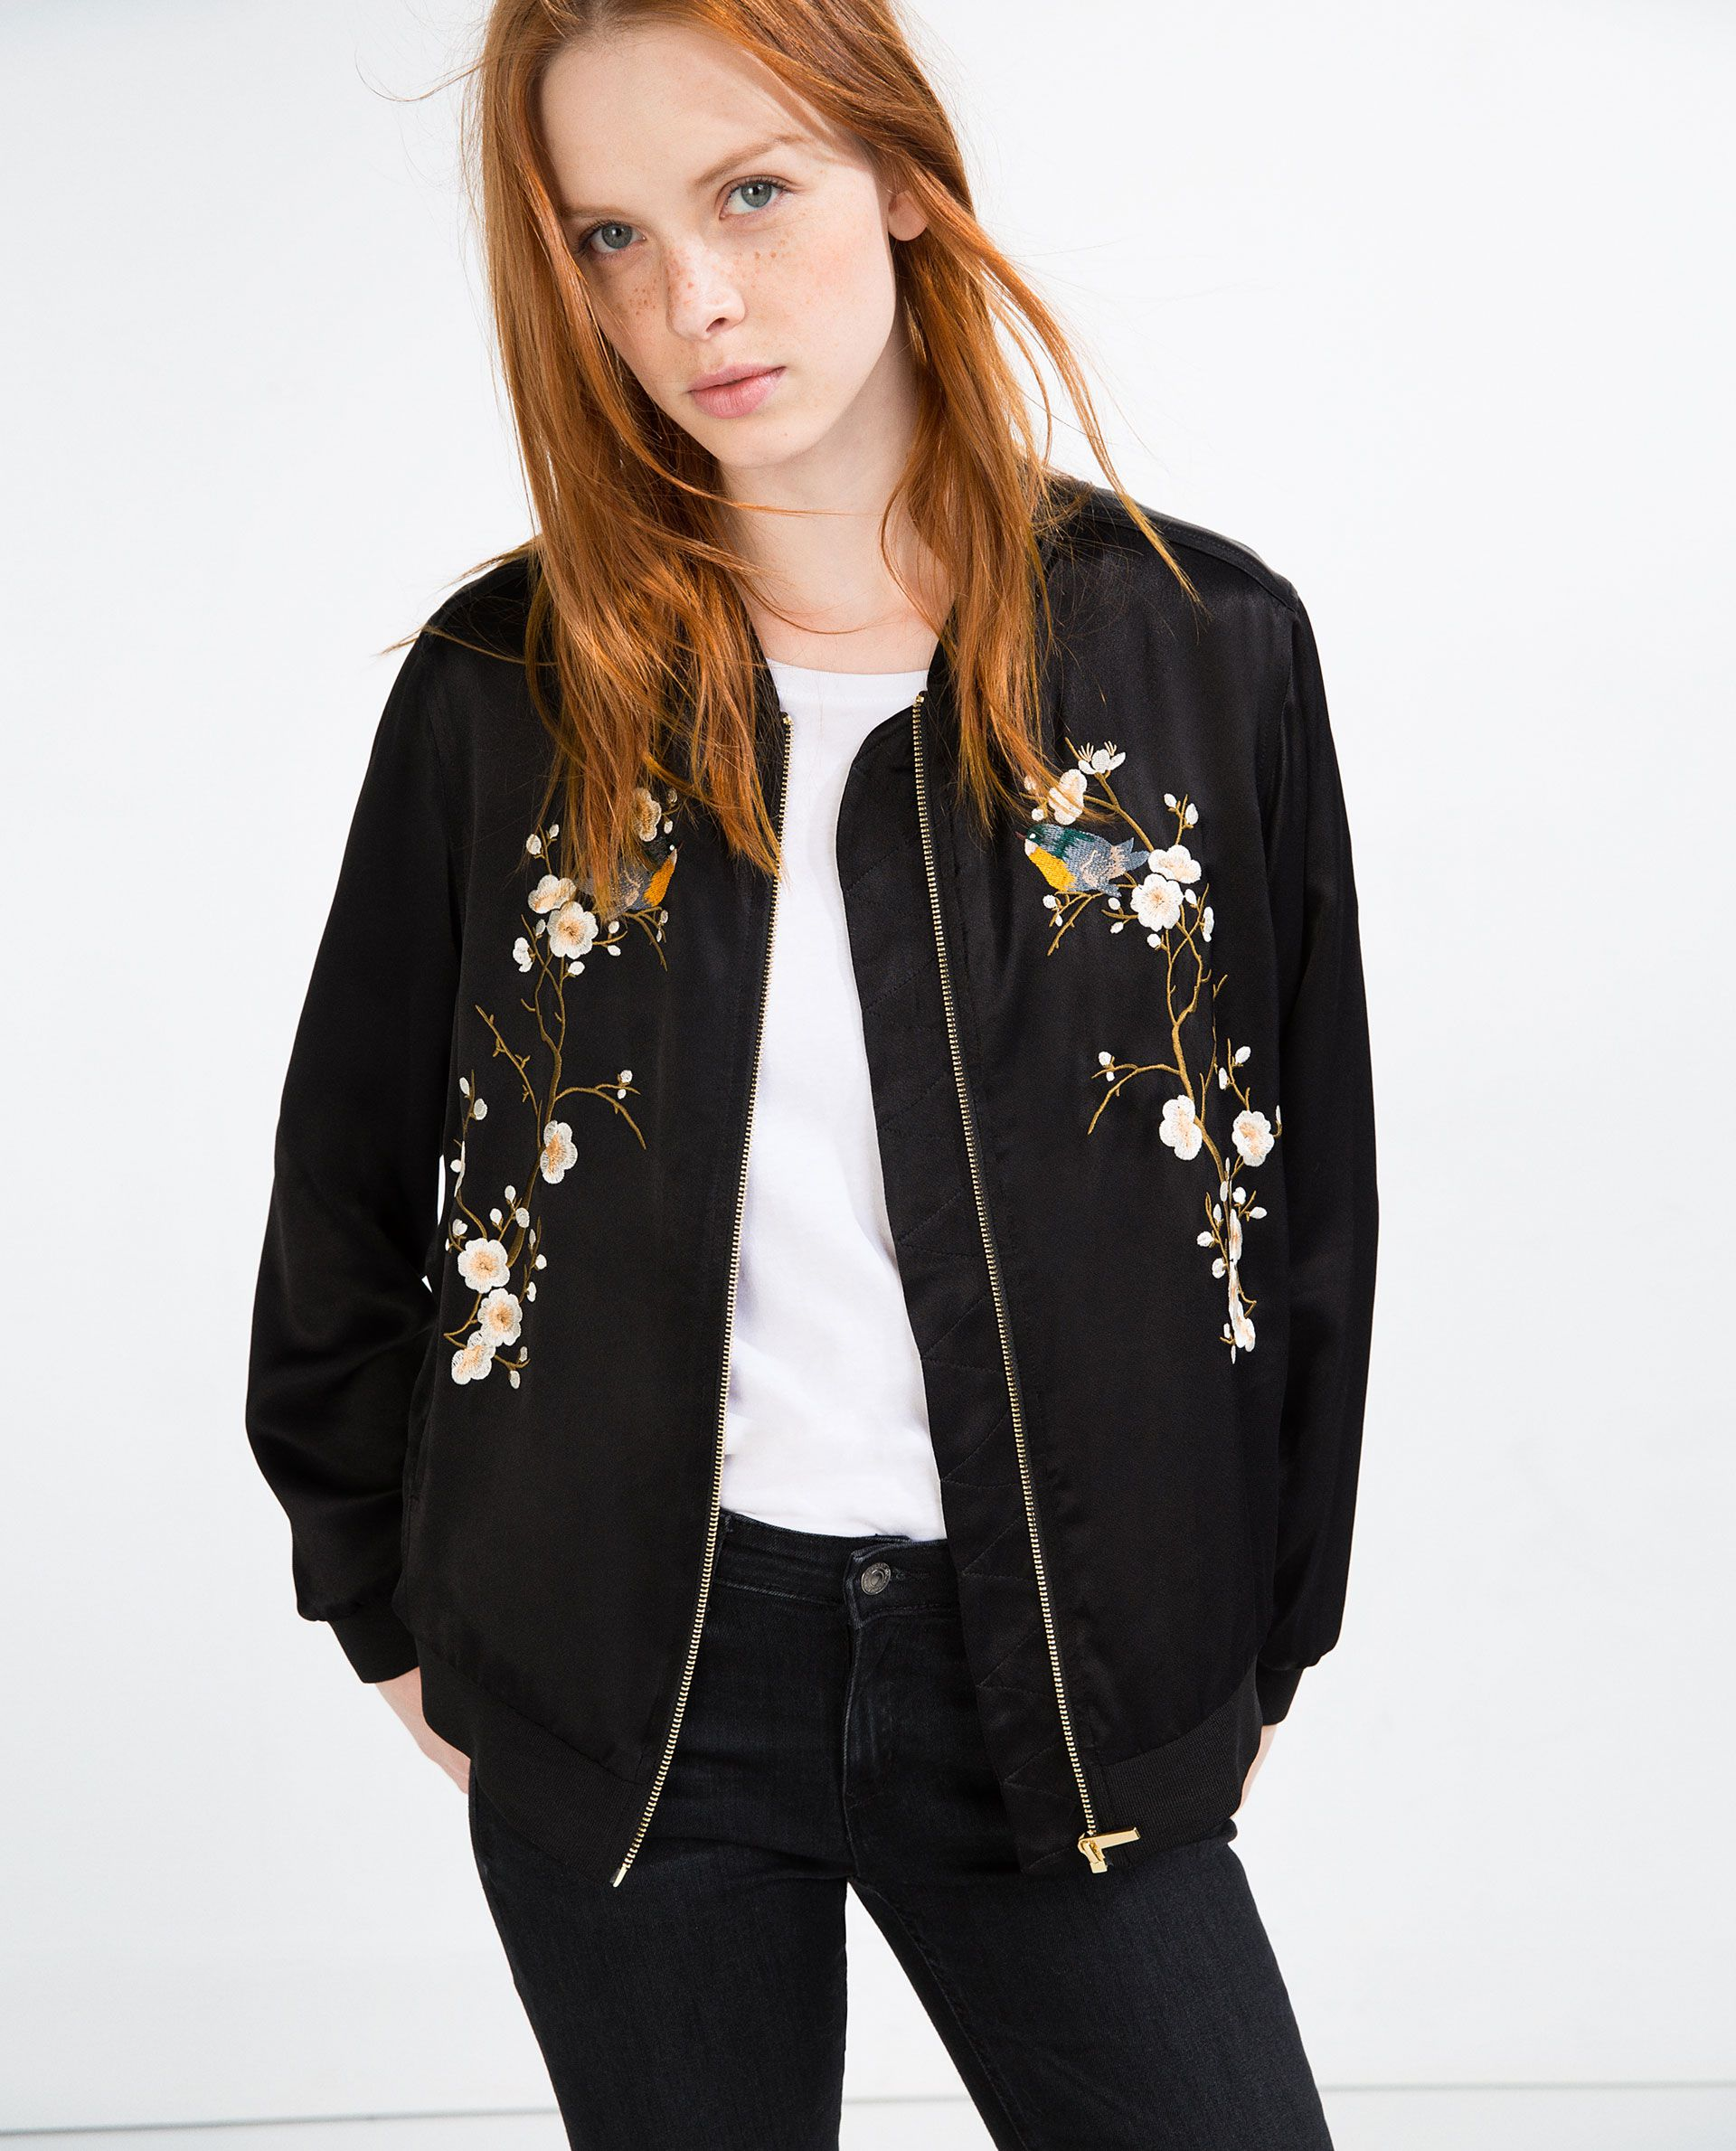 8 Embroidered Bomber Jackets That Olivia Palermo Would Approve Of | Style It | Pinterest ...